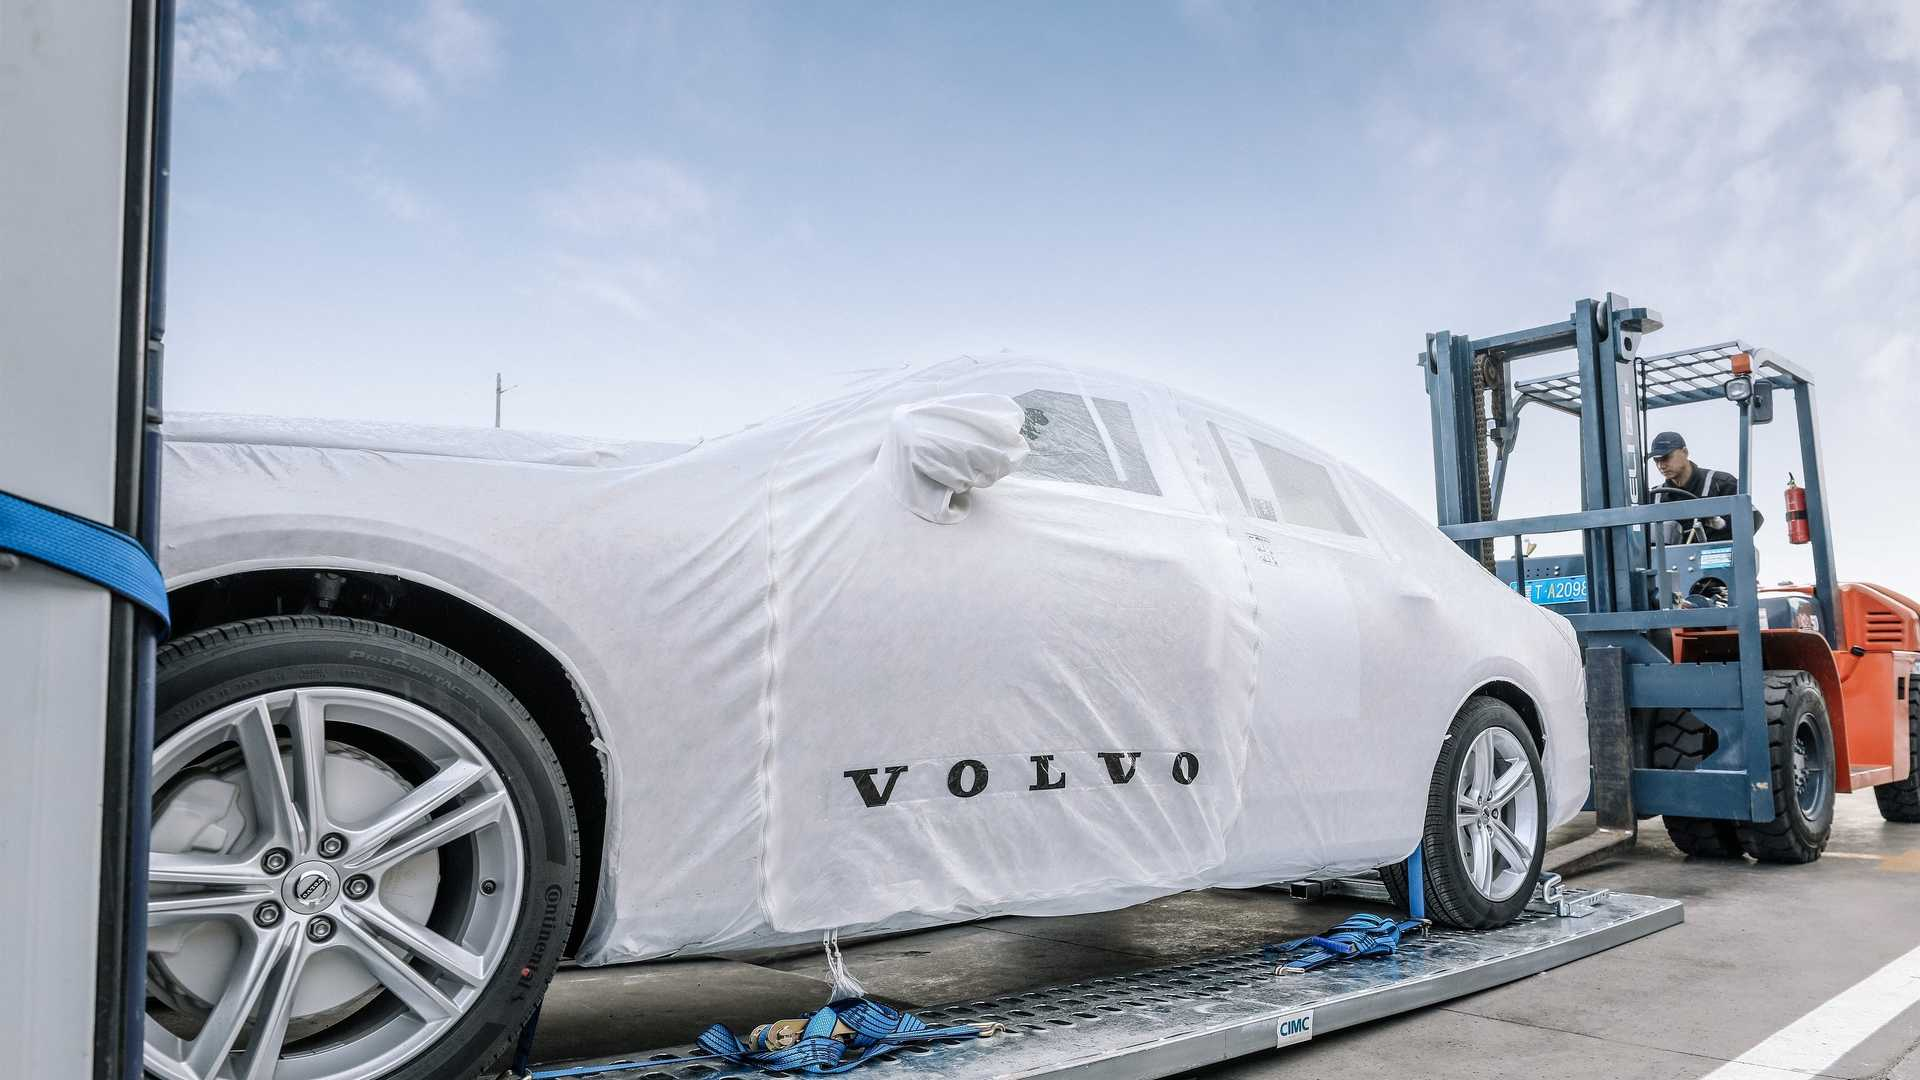 China Makes Better Quality Cars Than Europe Volvo Exec Says